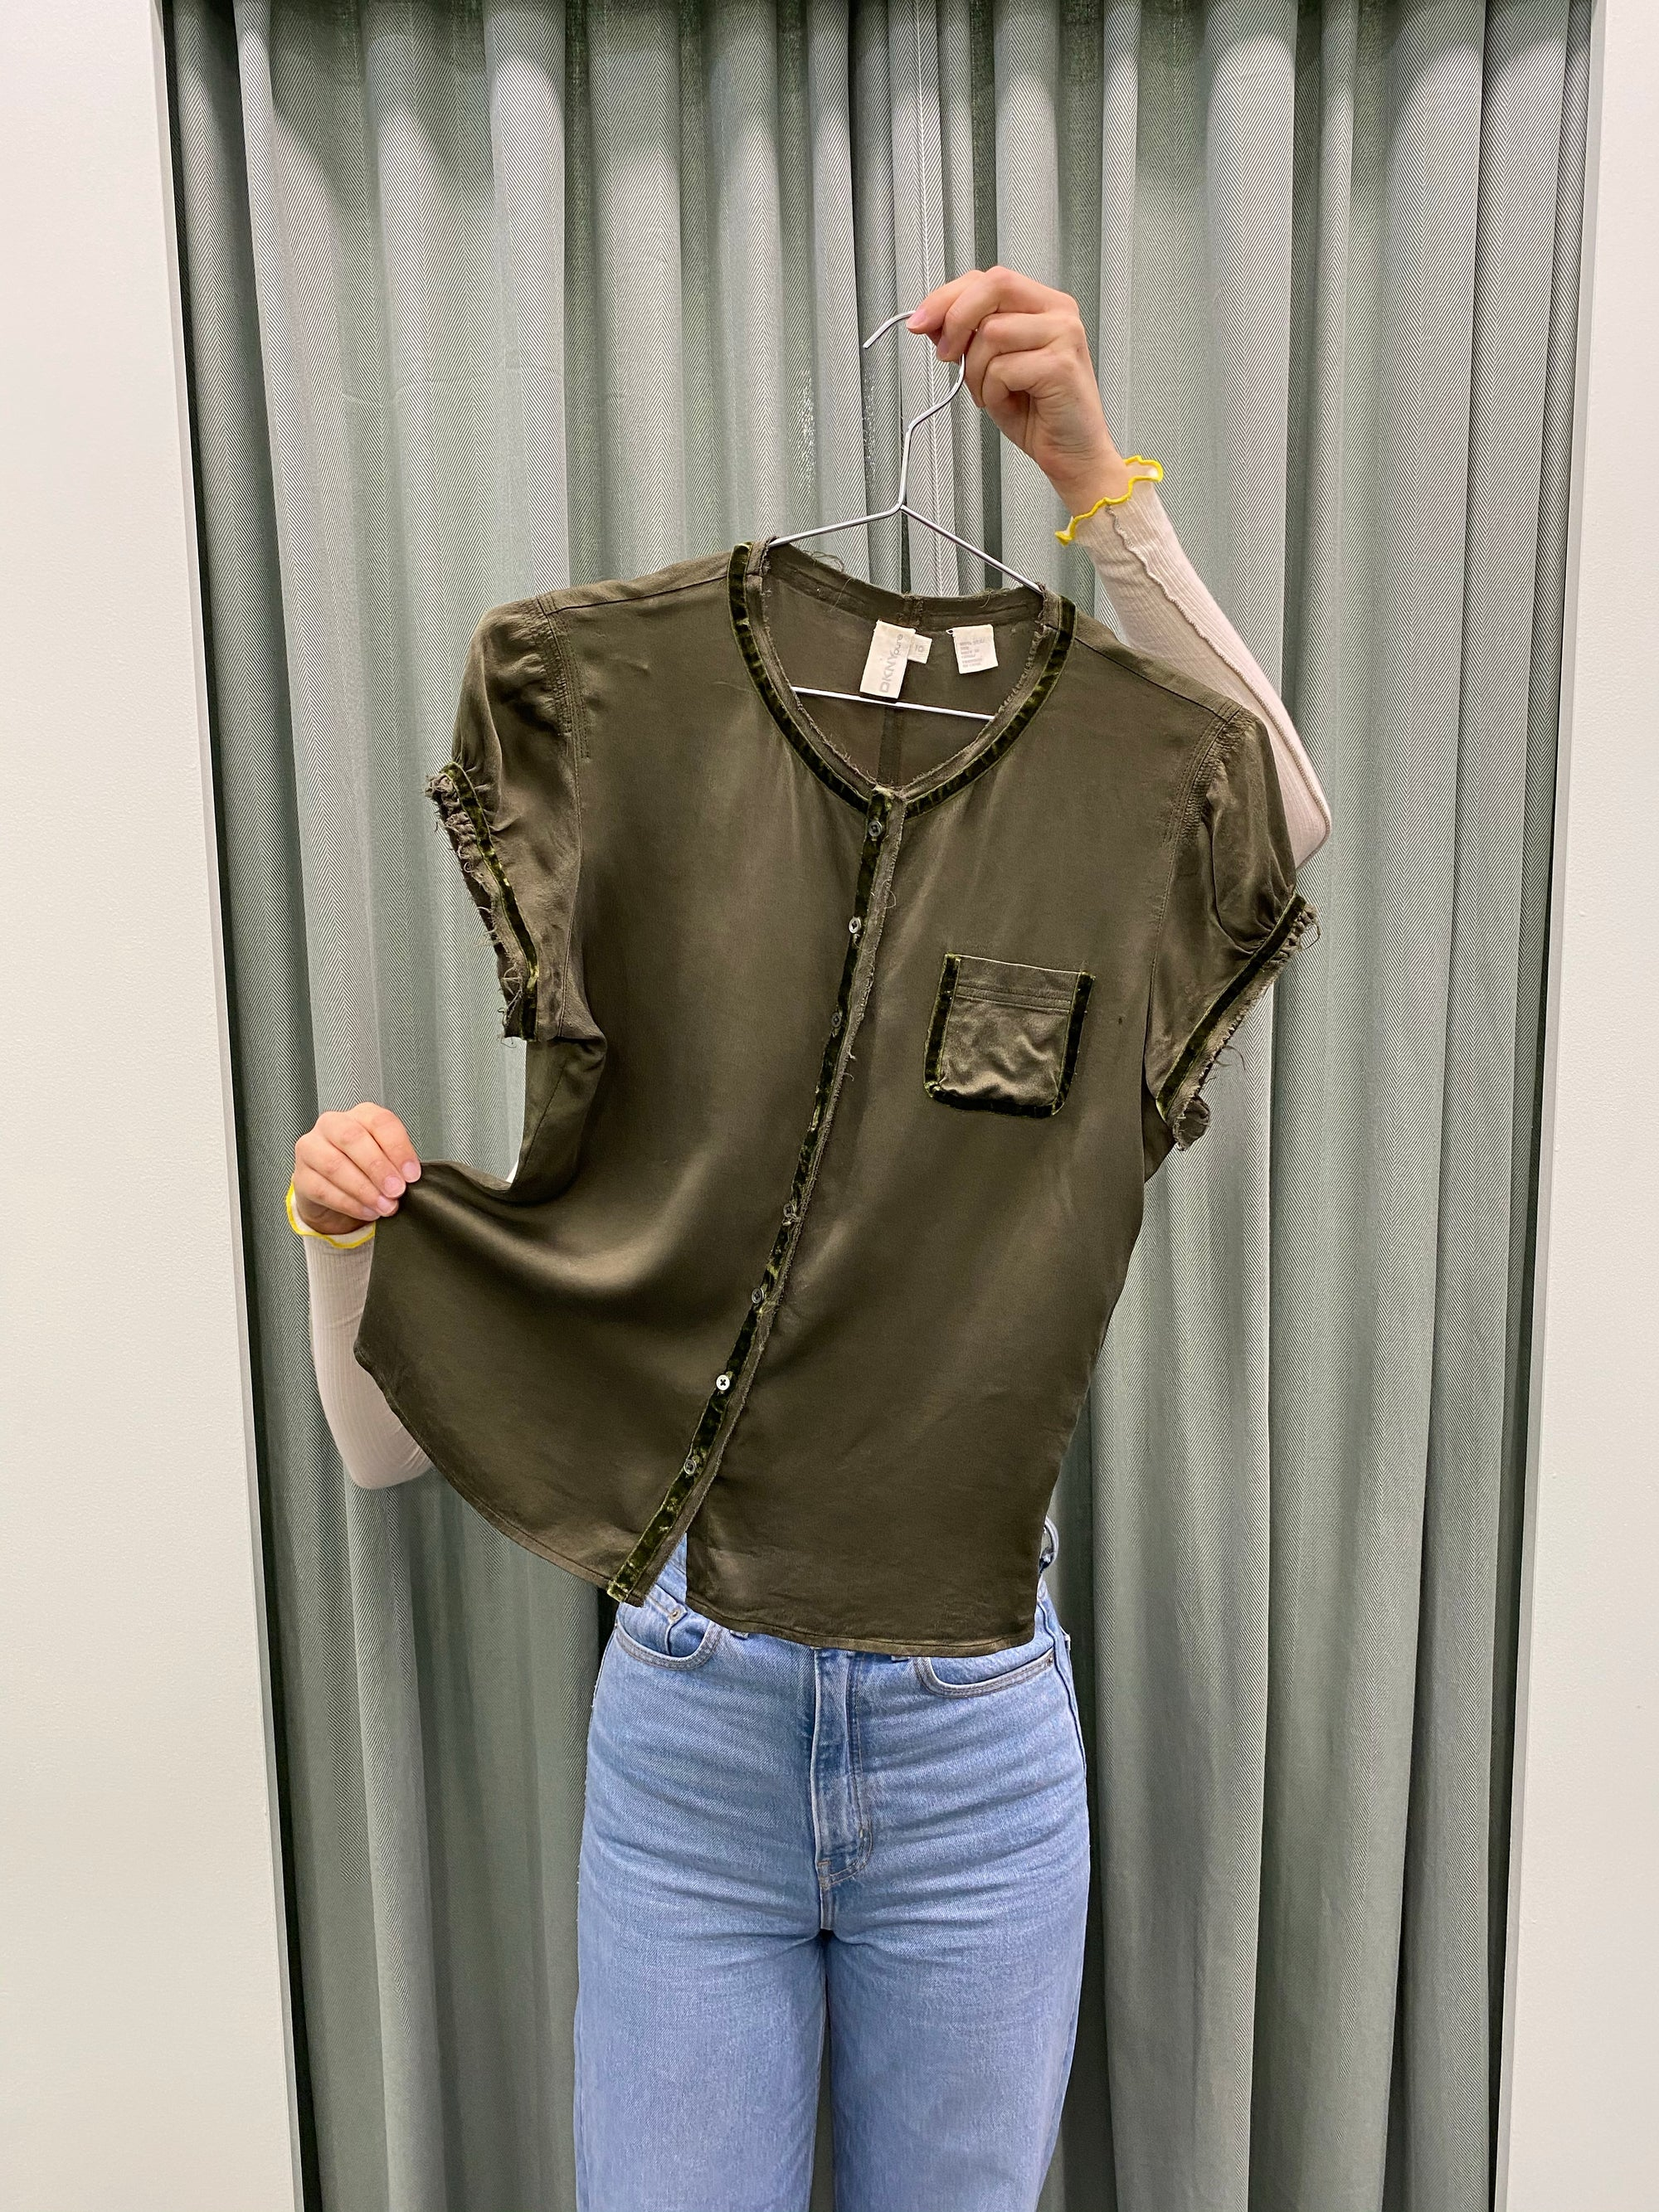 DKNY Delicate Olive Silk Blouse